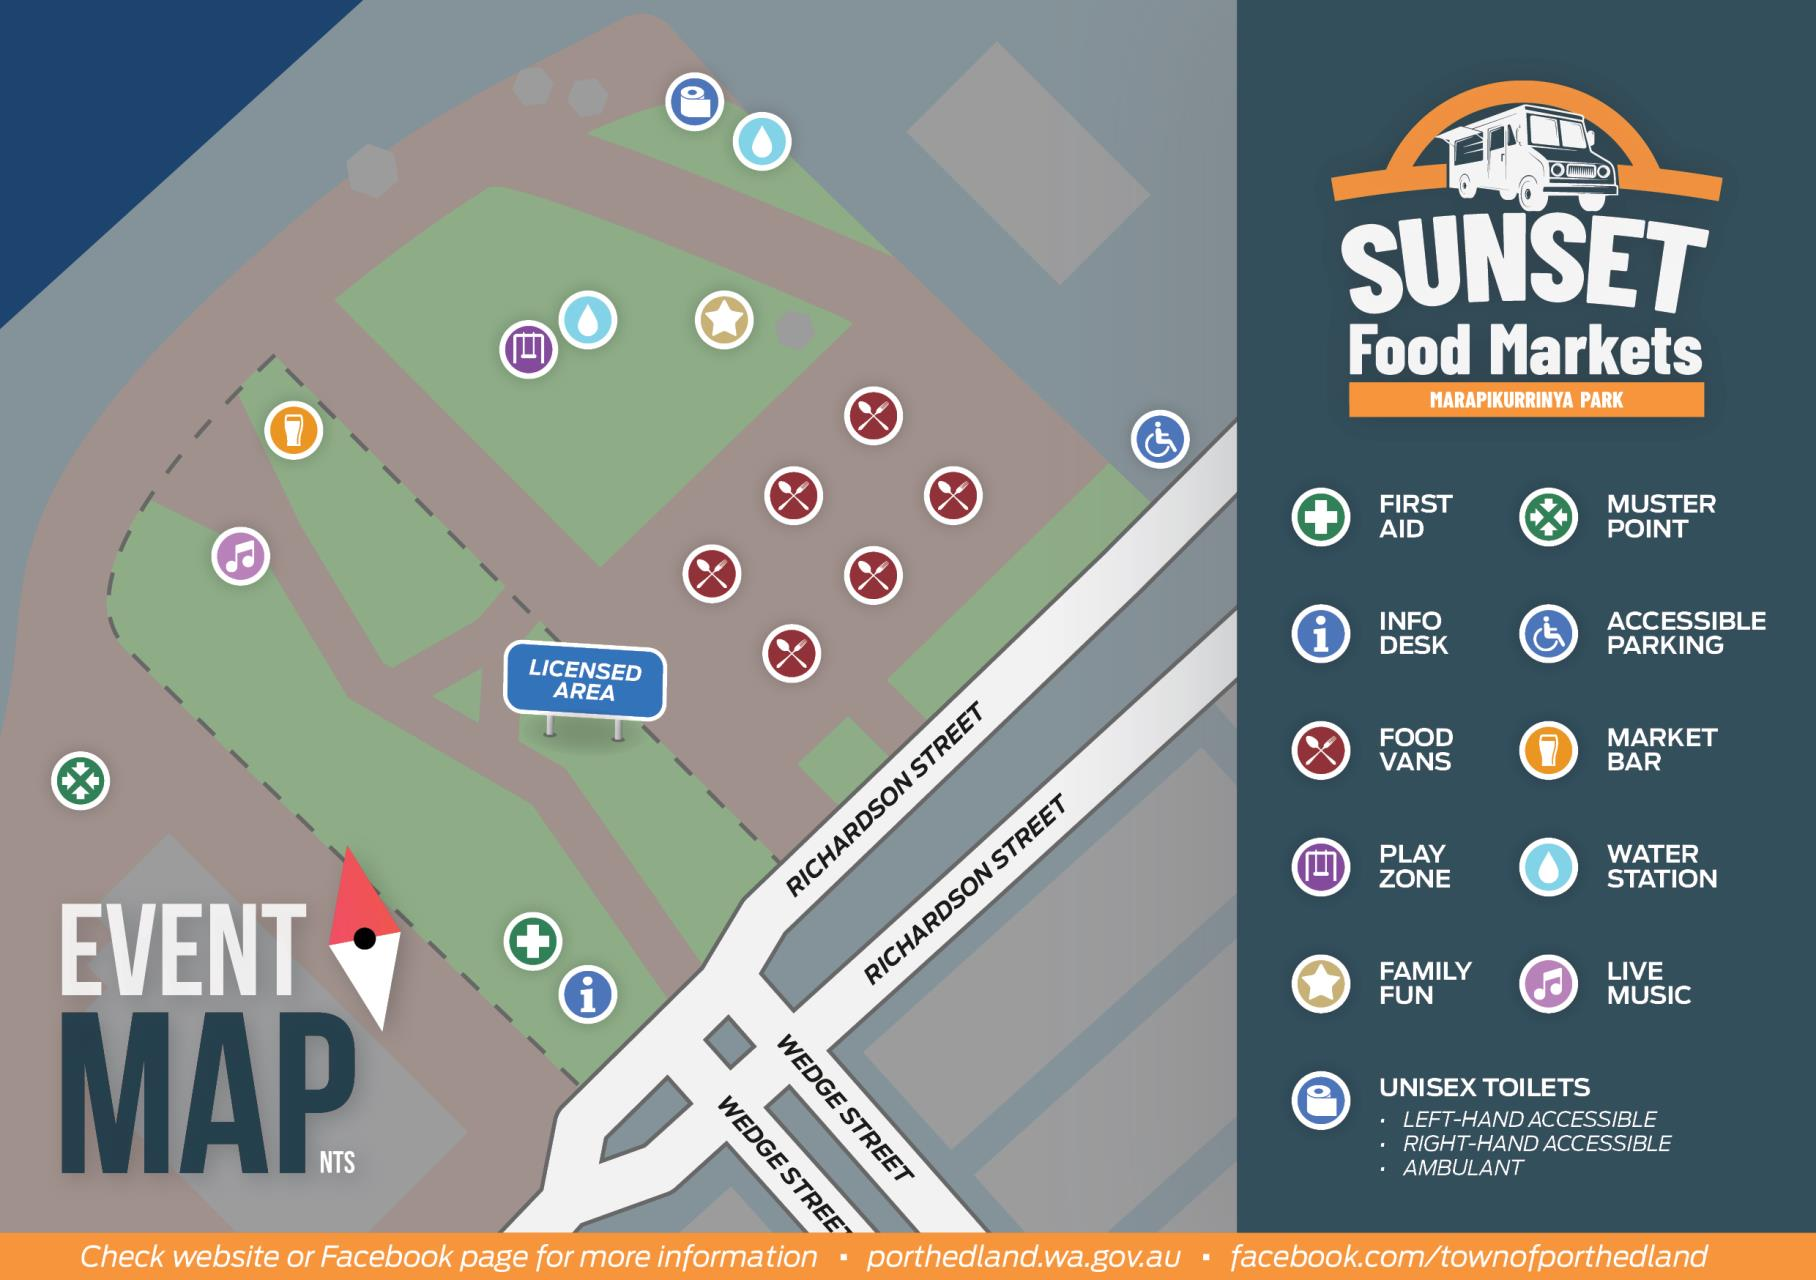 Sunset Food Market Event Map